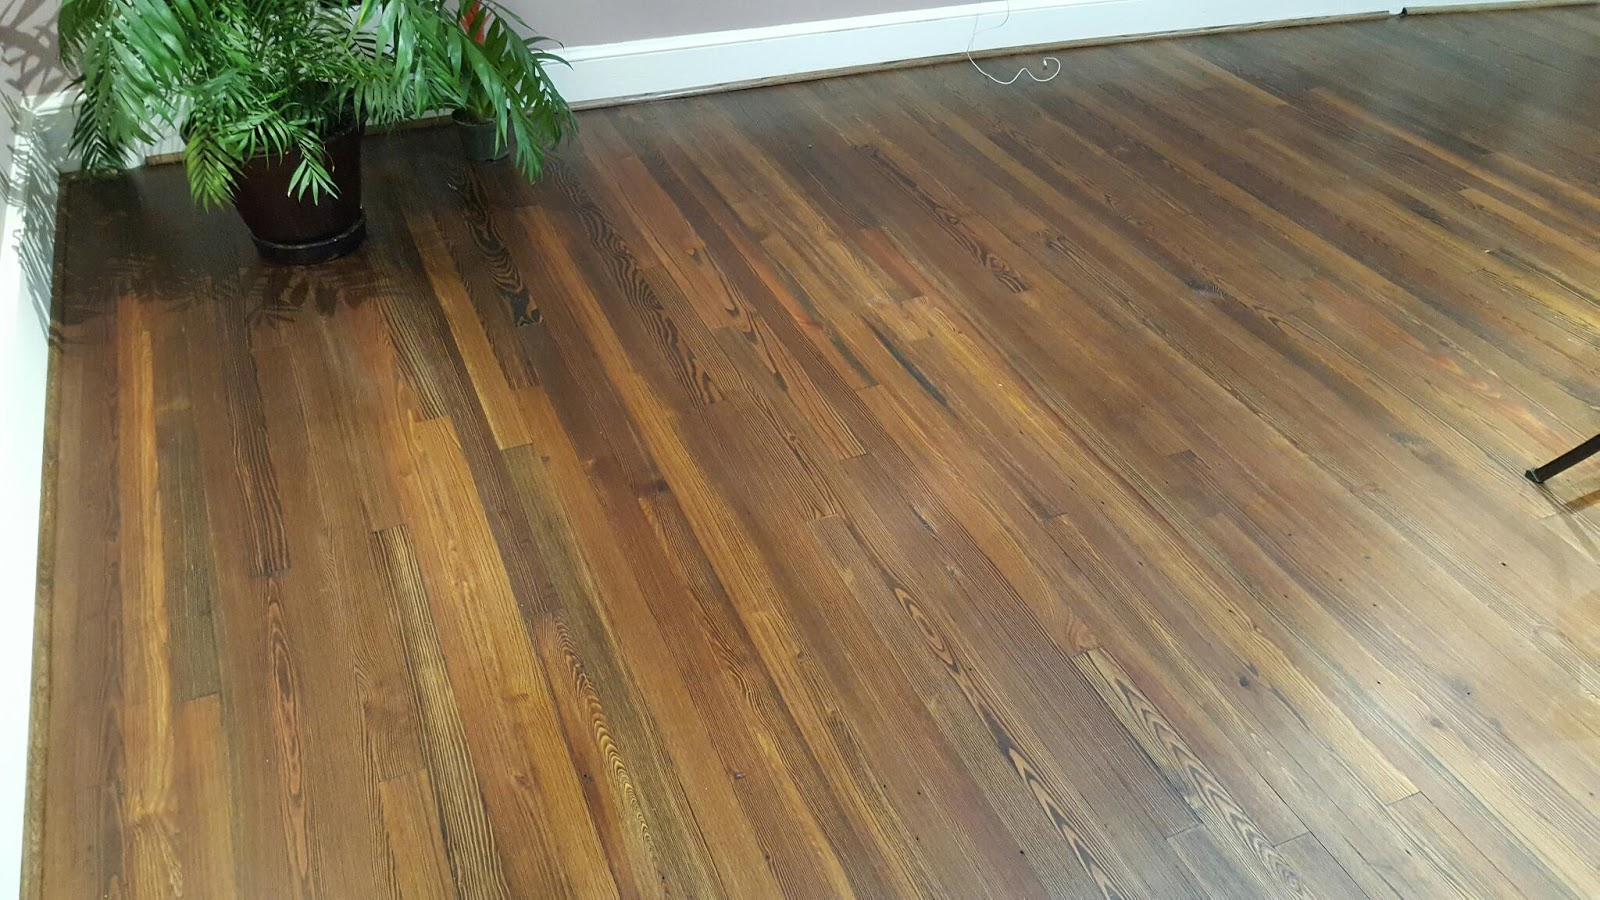 Universal floors reclaimed pine stained for Universal flooring